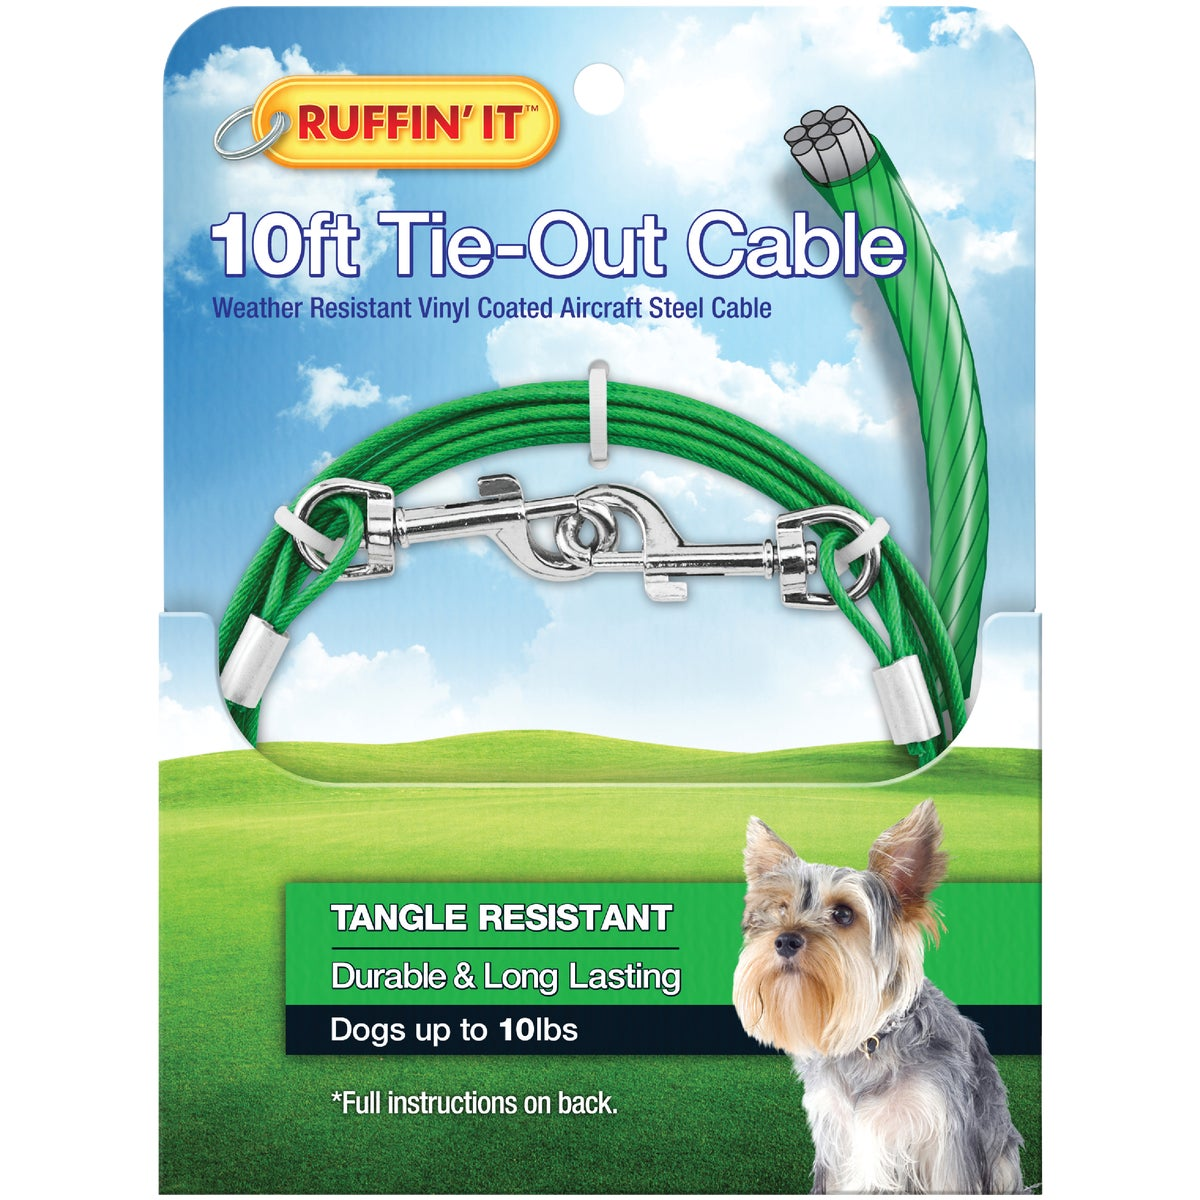 Westminster Pet 10' TIE-OUT CABLE 29010